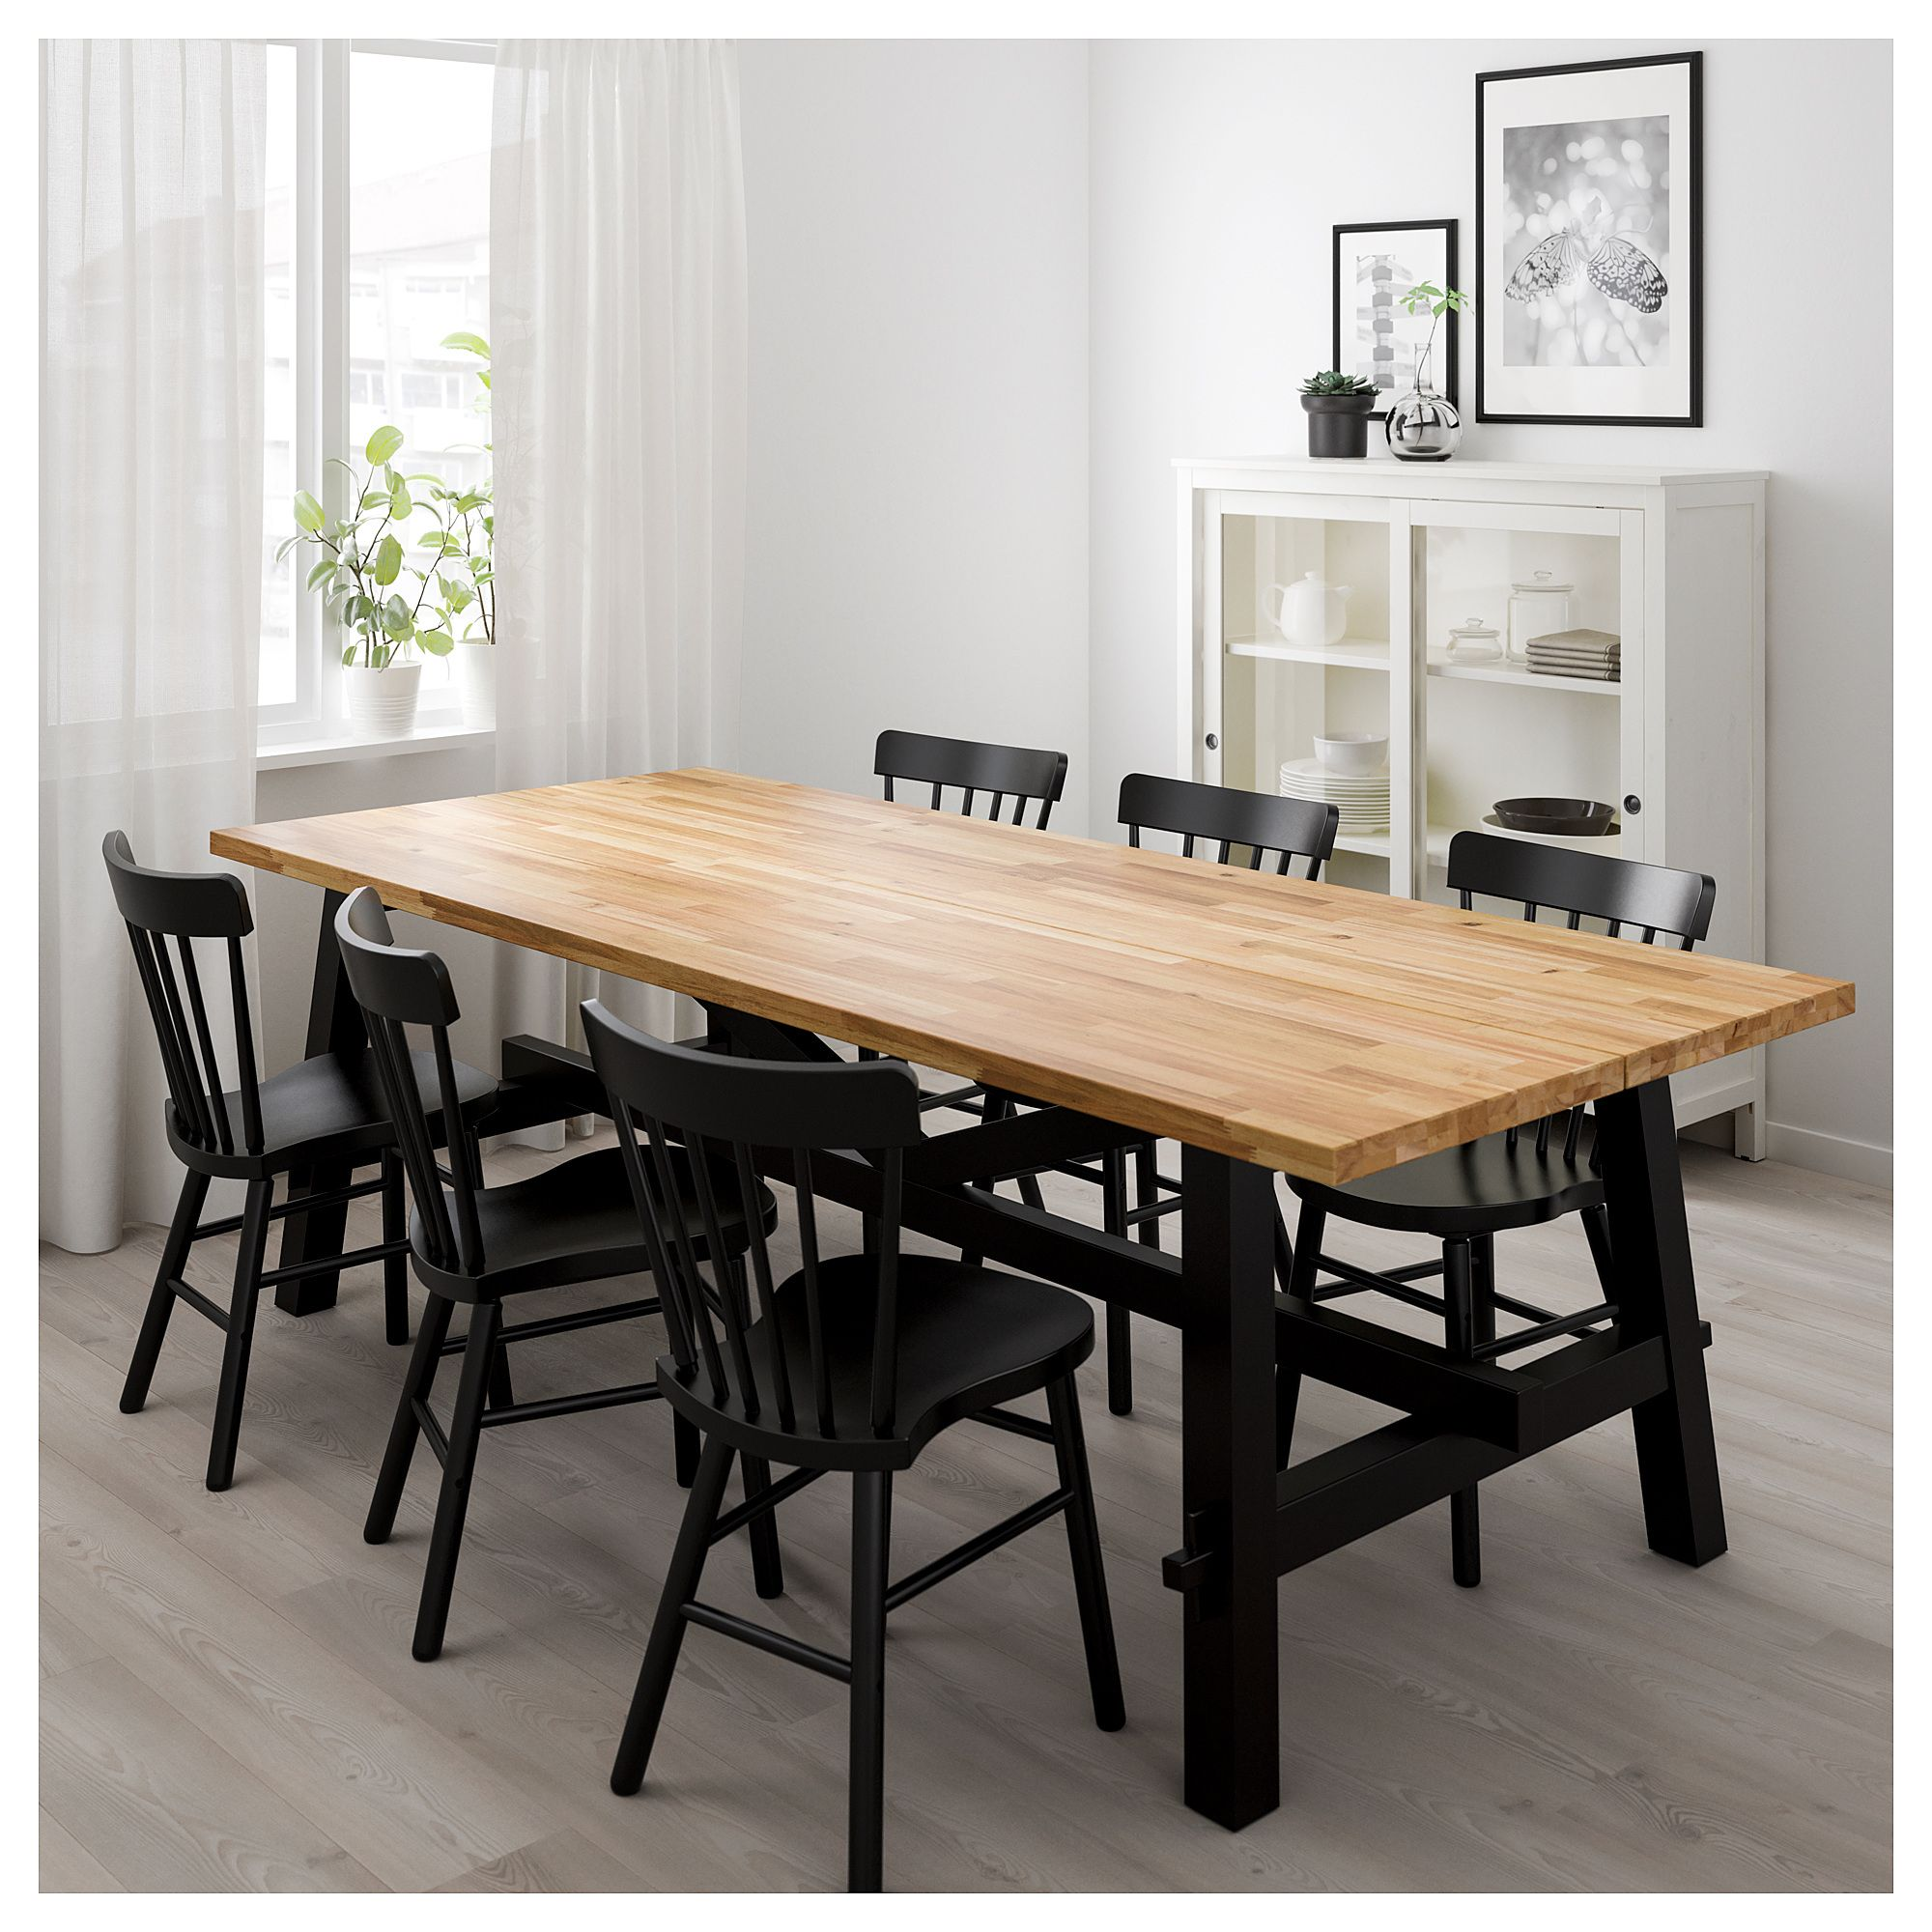 Furniture And Home Furnishings In 2019 Products Ikea